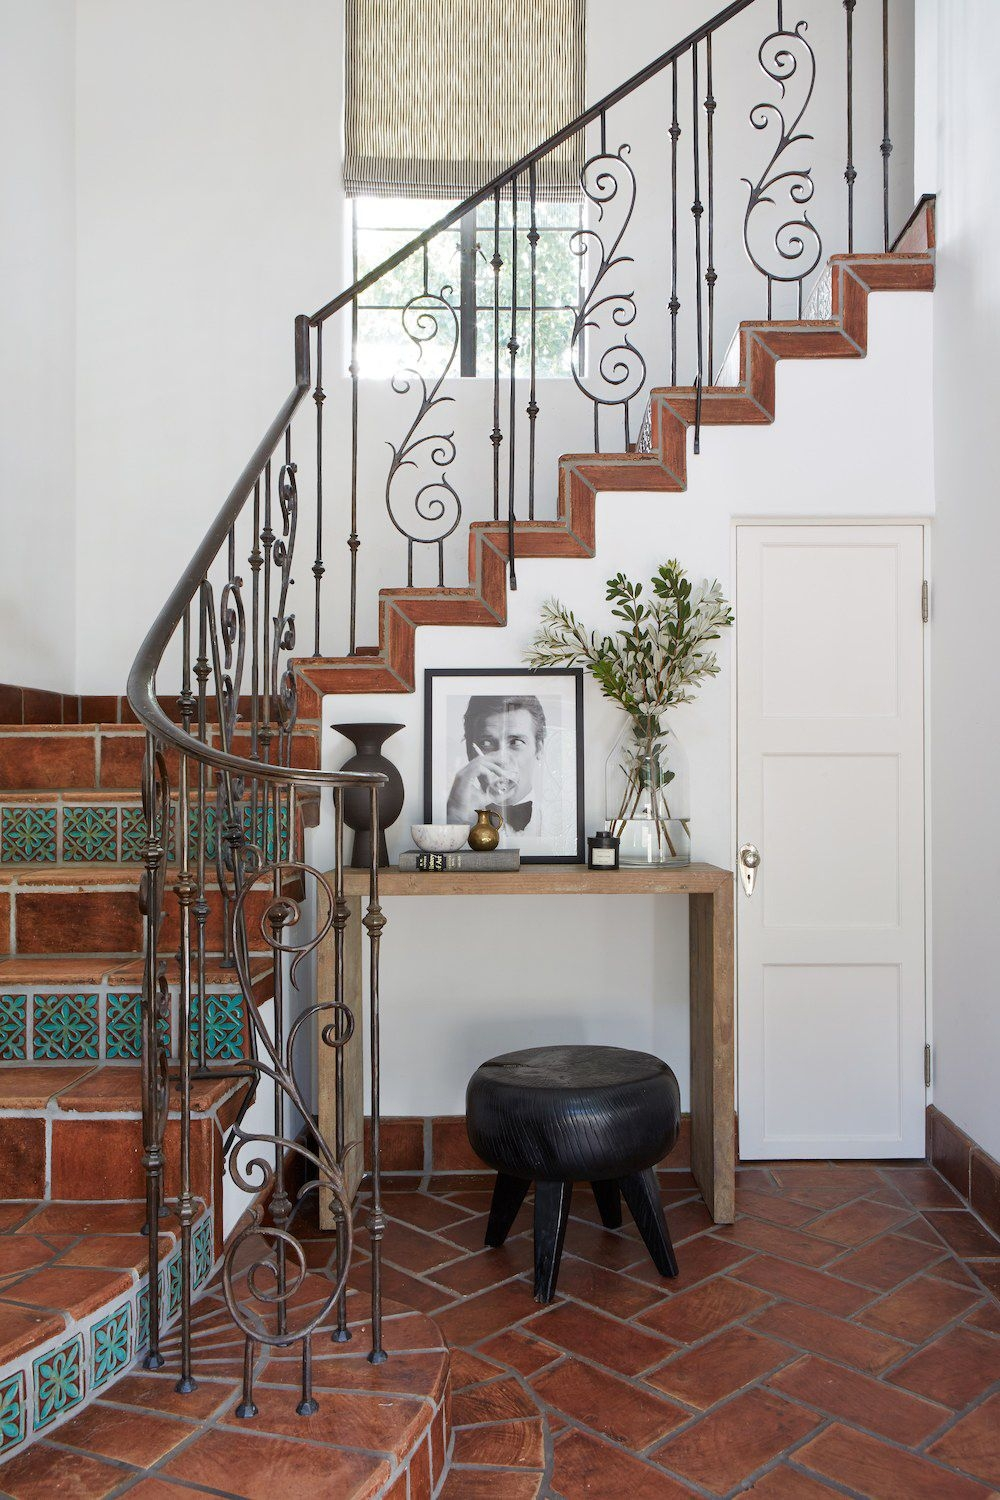 25 Unique Stair Designs Beautiful Stair Ideas For Your House | Stairs Design Inside Home | Interior Staircase Simple | Wooden | Outside | Short | Behind Duplex